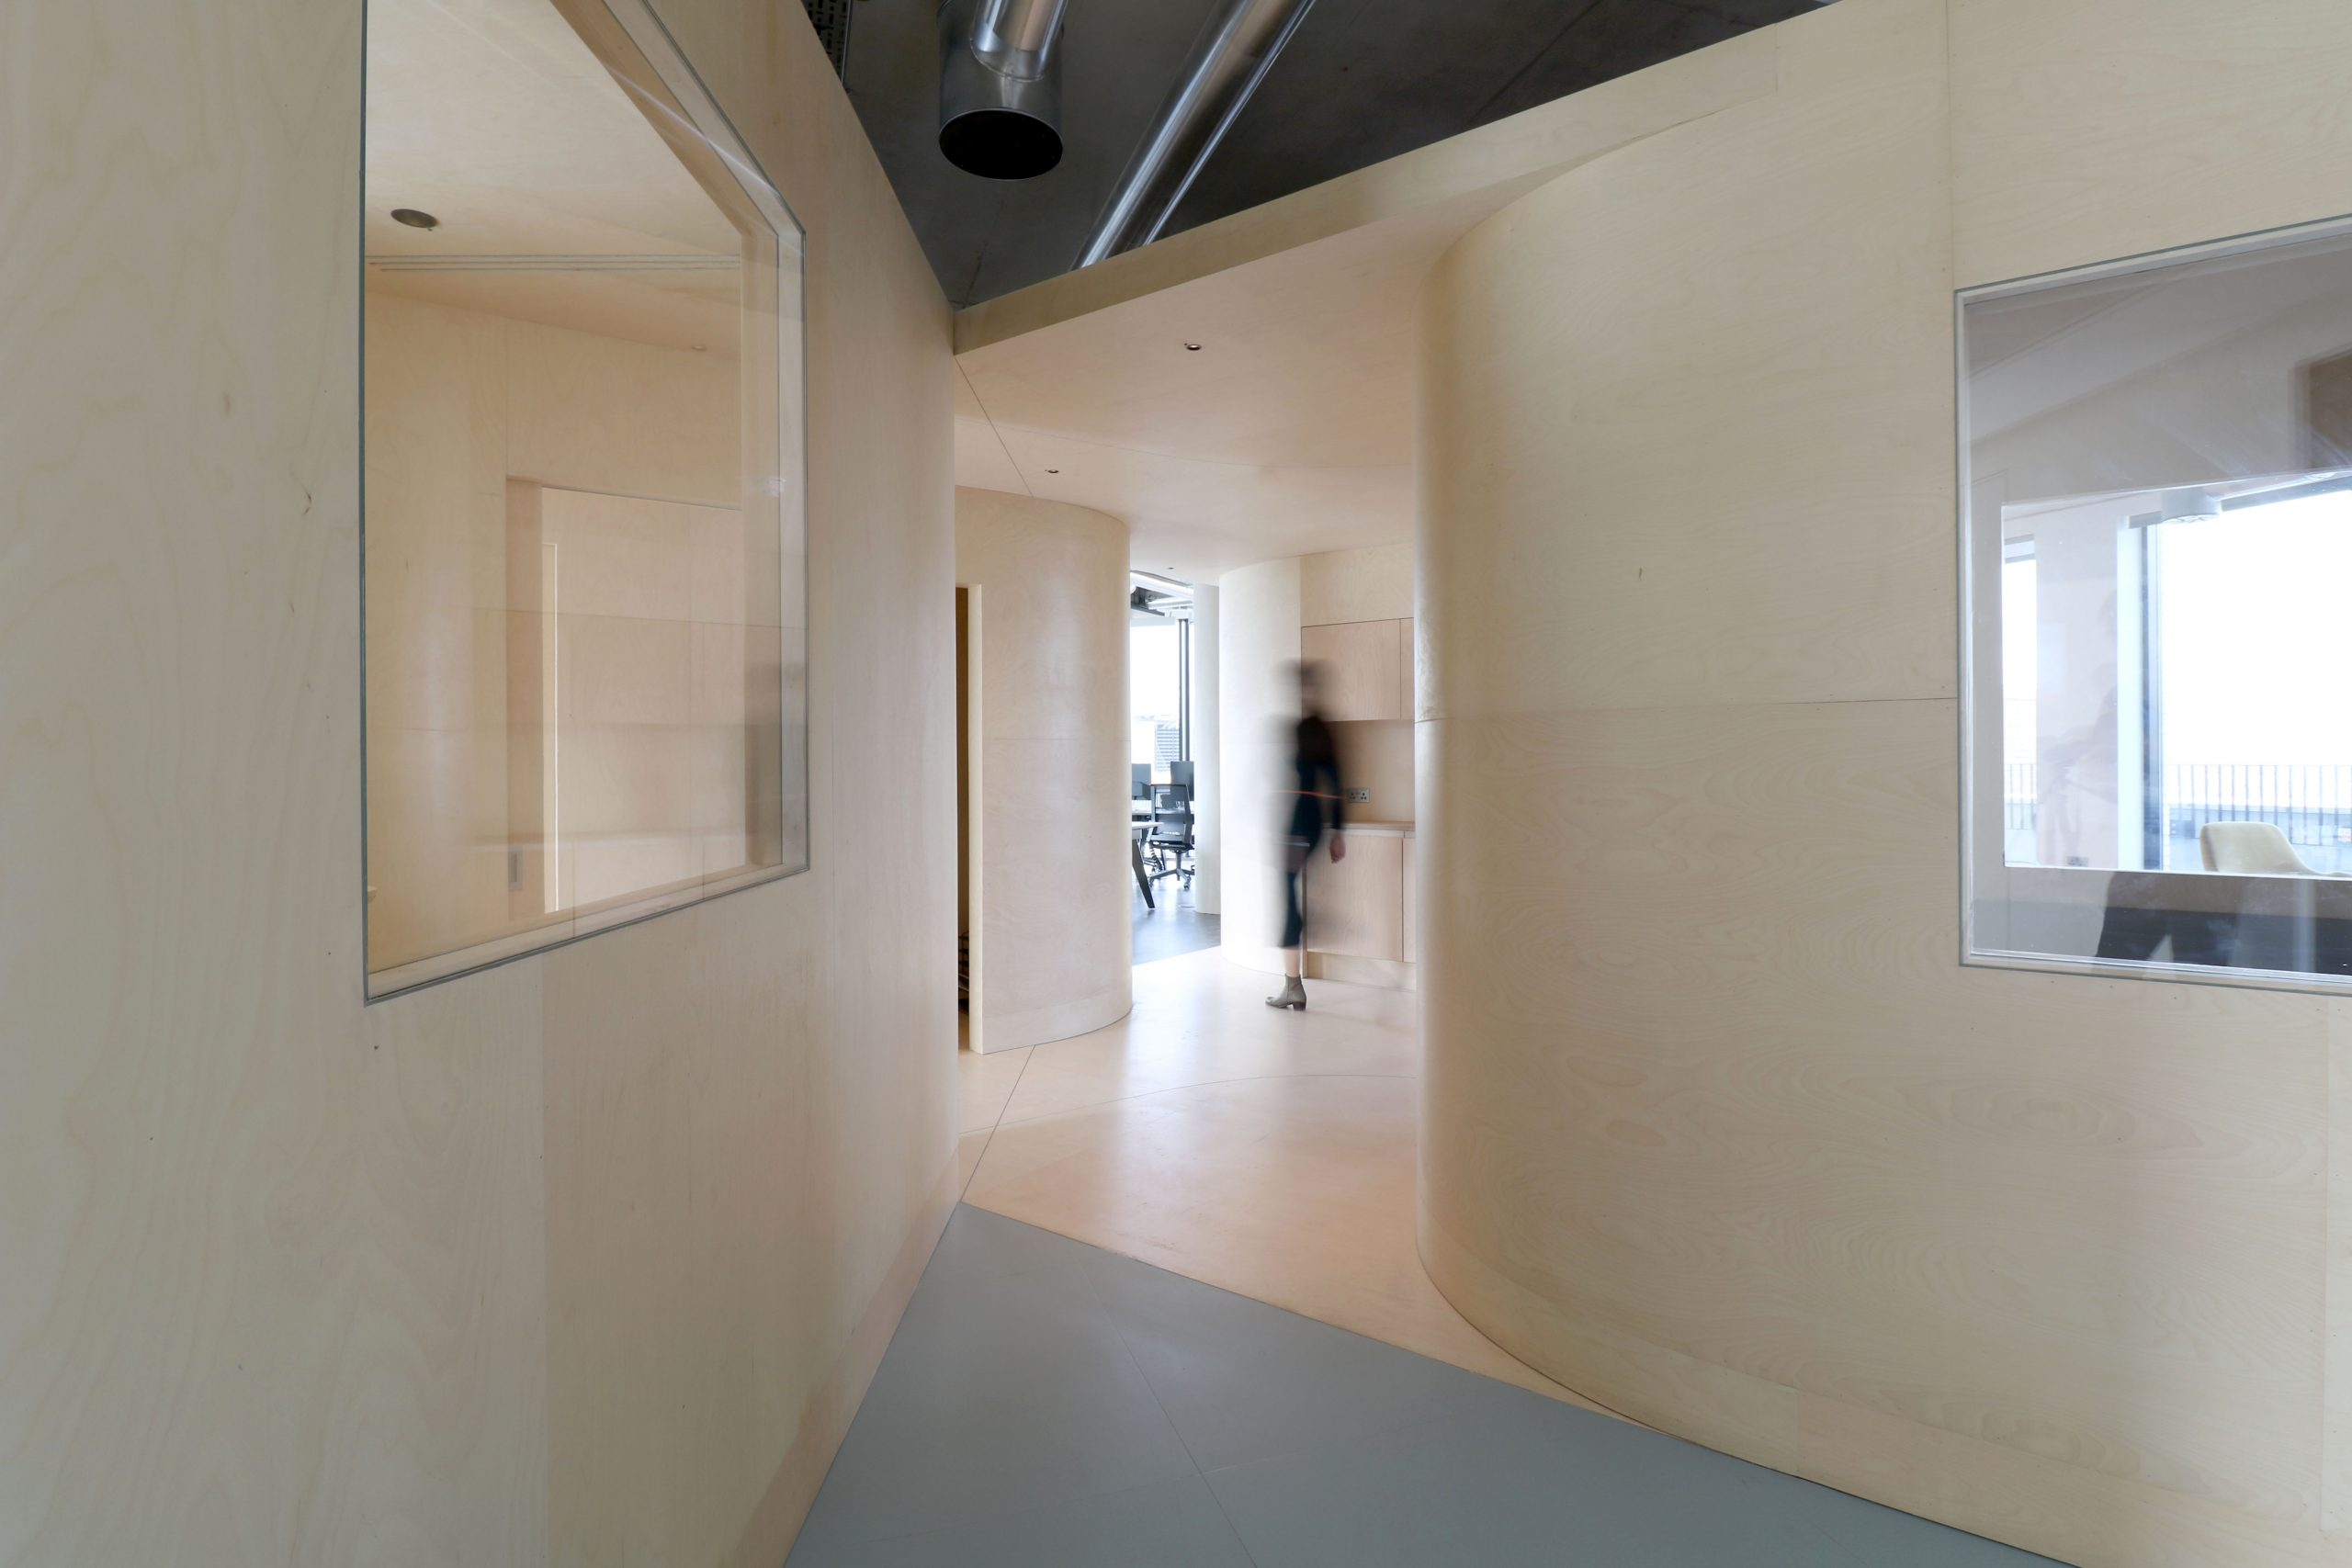 Interior of a plywood-clad office